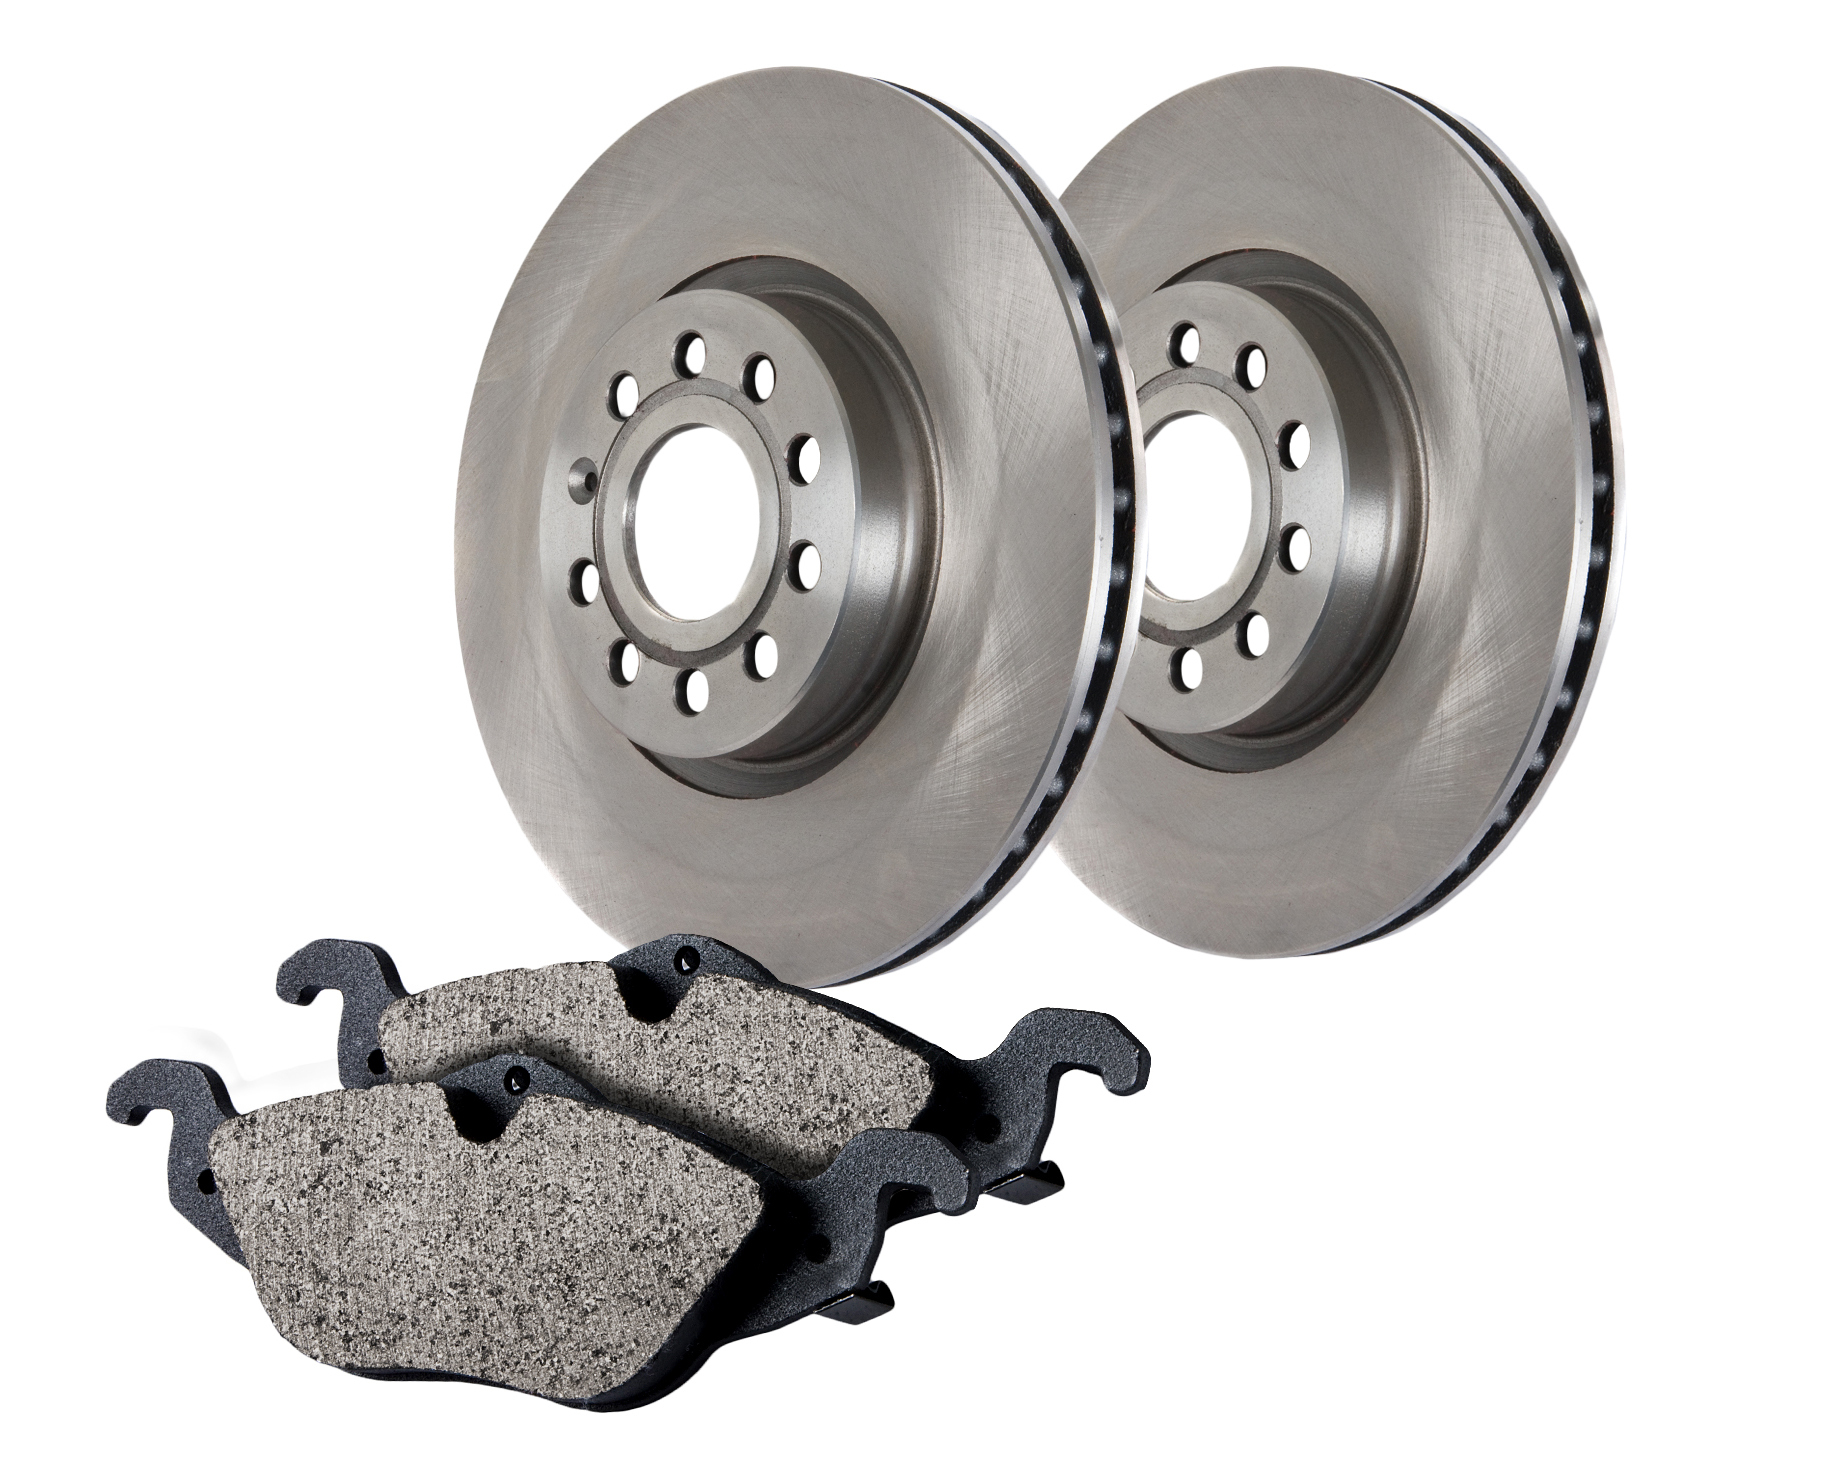 Centric Brake Parts 905.61059 Brake Rotor and Pad Kit, Premium, Semi-Metallic Pads, Iron, Natural, Ford Fiesta 2014-17, Kit